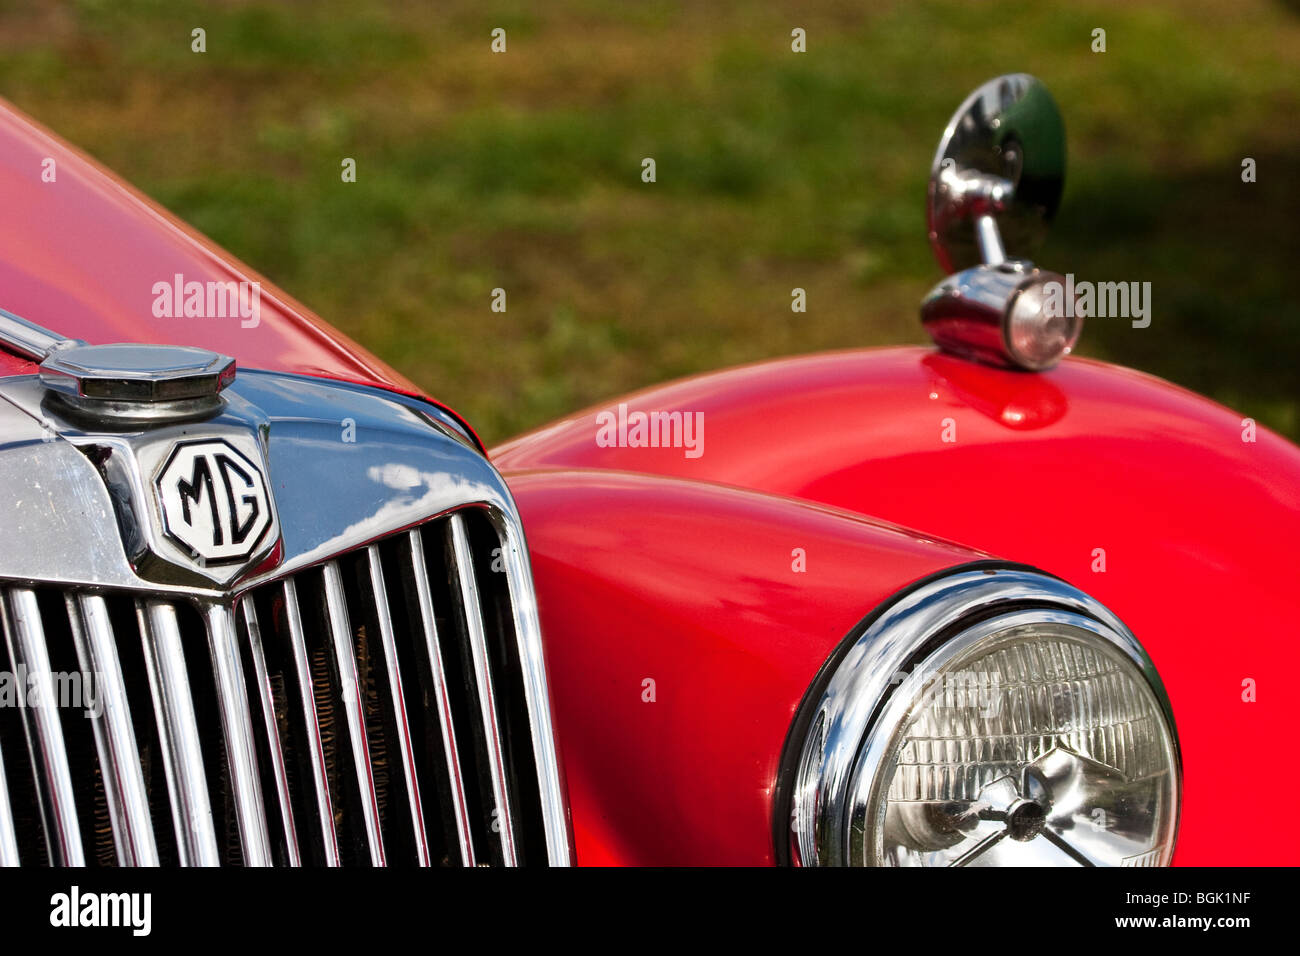 Mg Tf Classic Red Sports Car Mg Cars England Uk Stock